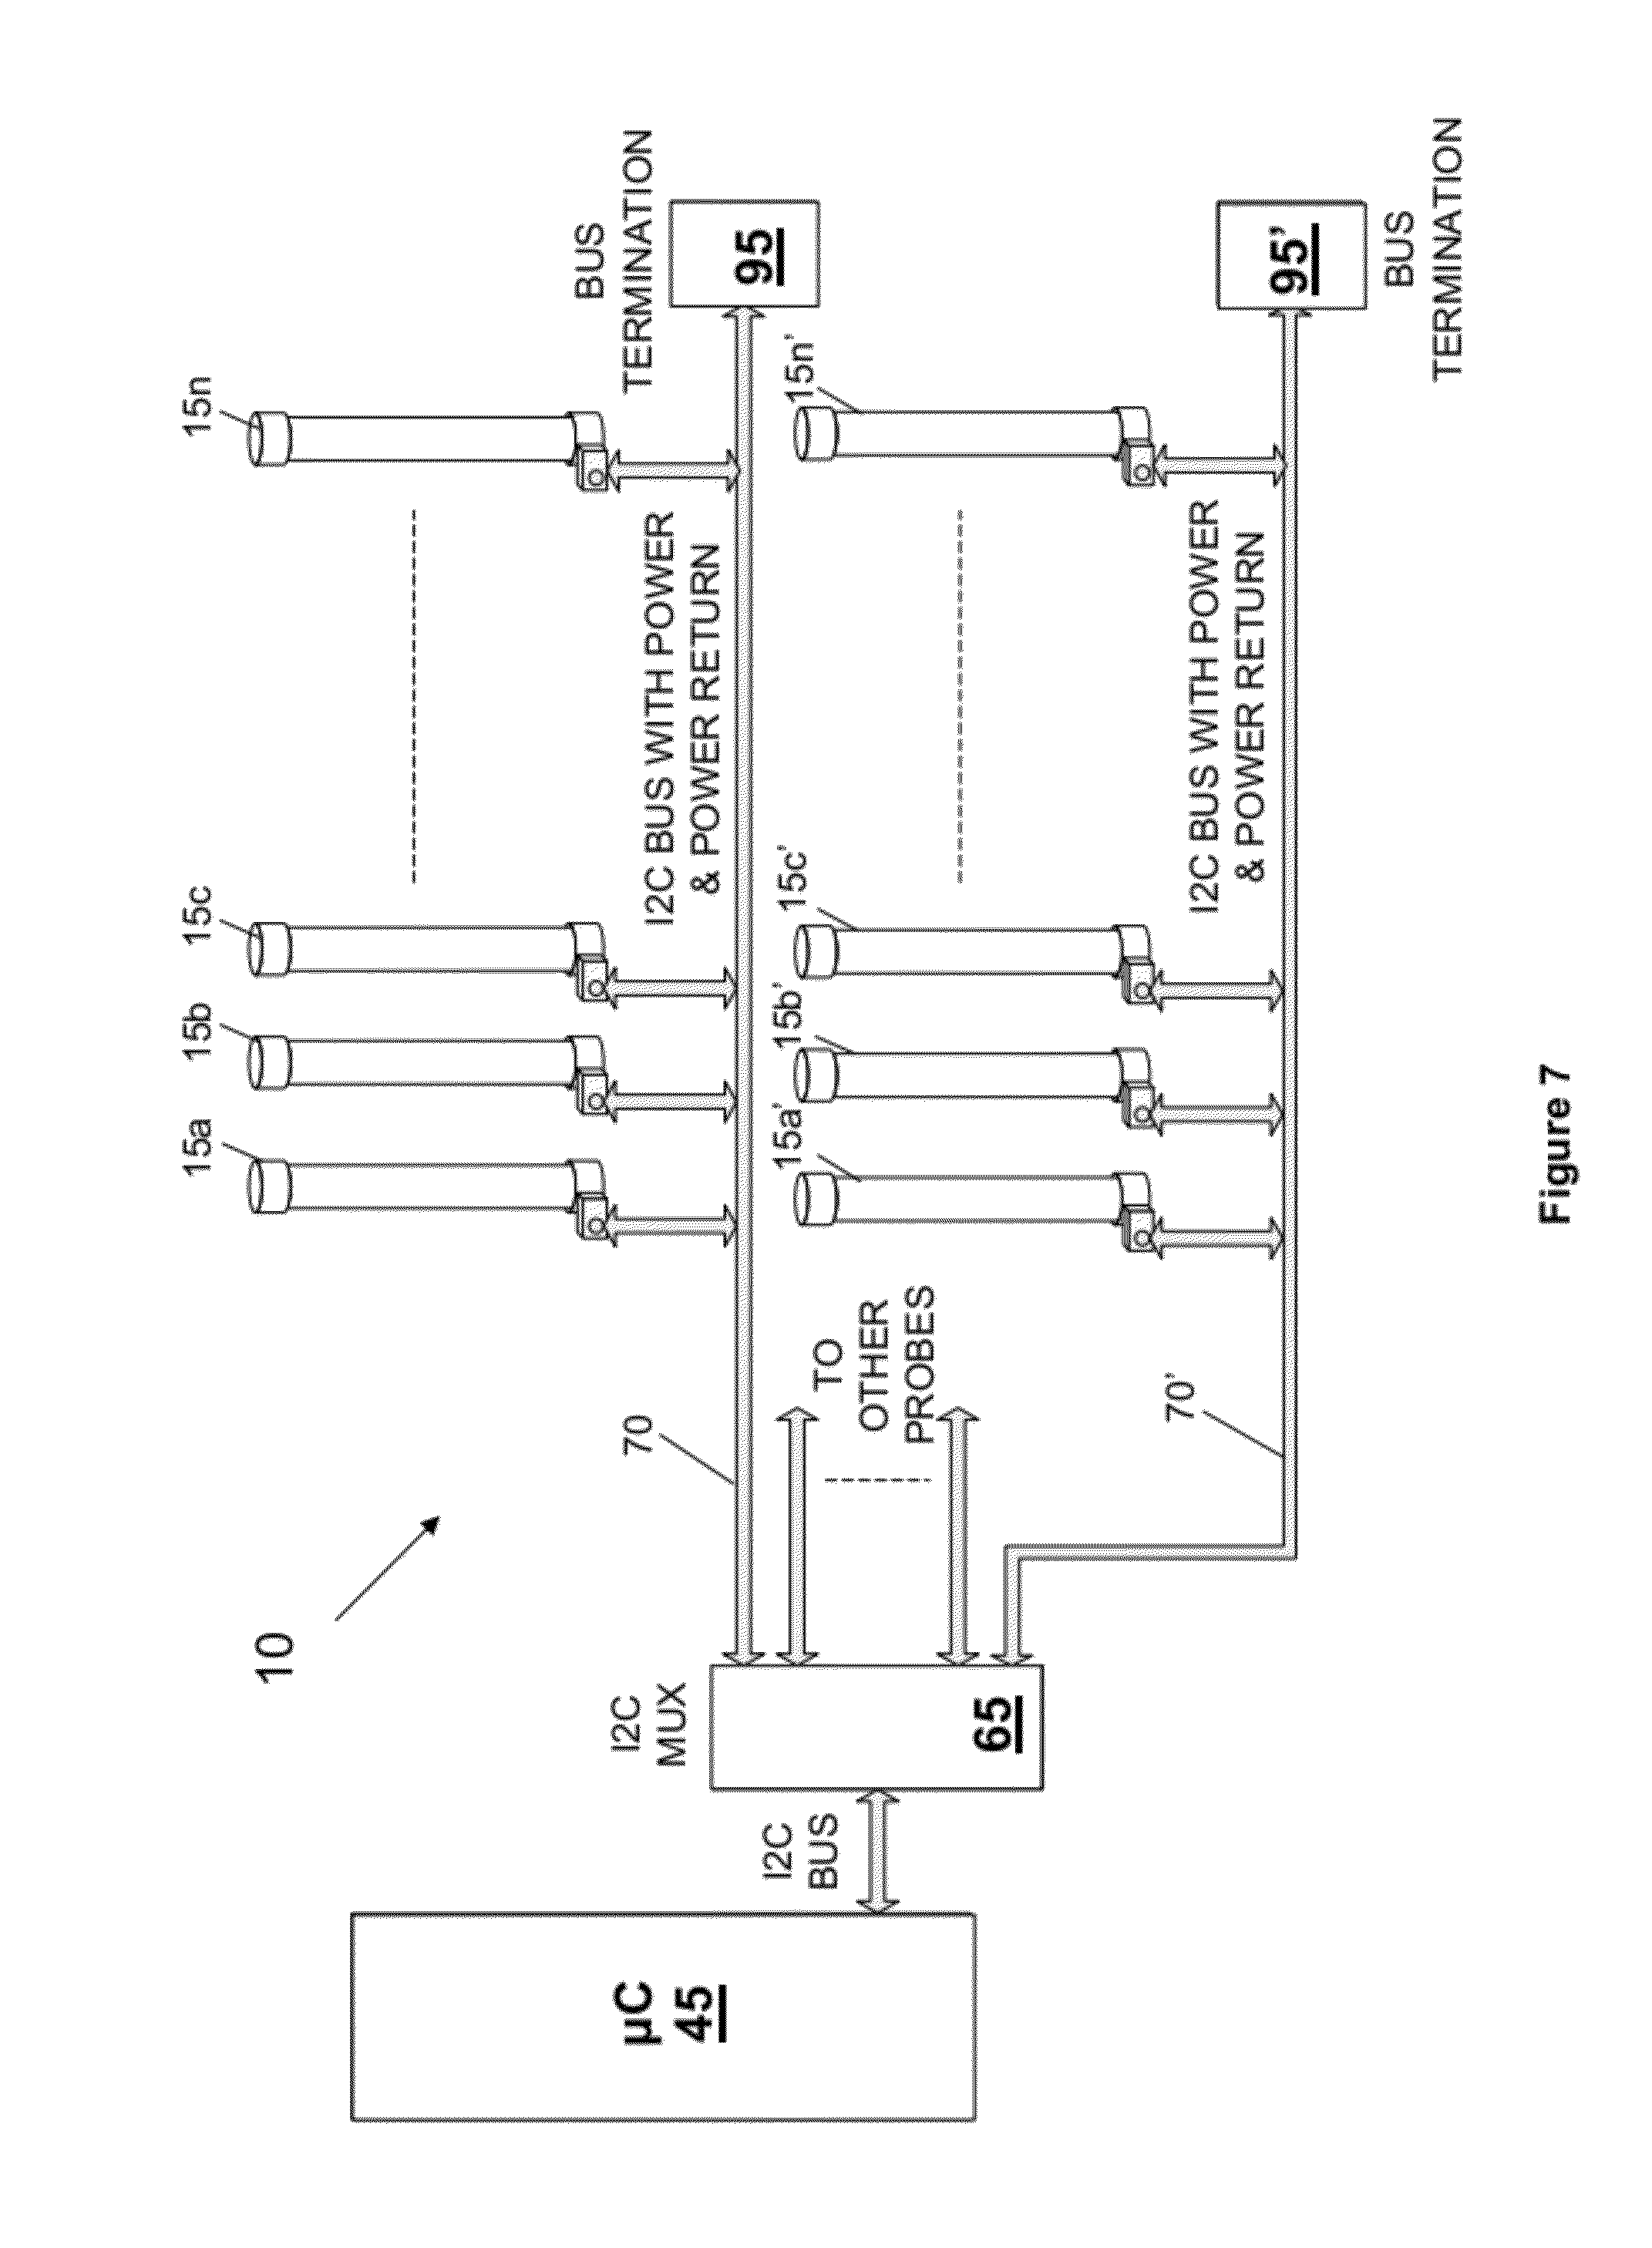 US08281655 20121009 D00007 patent us8281655 fuel gauging system utilizing a digital fuel pricol temperature gauge wiring diagram at n-0.co